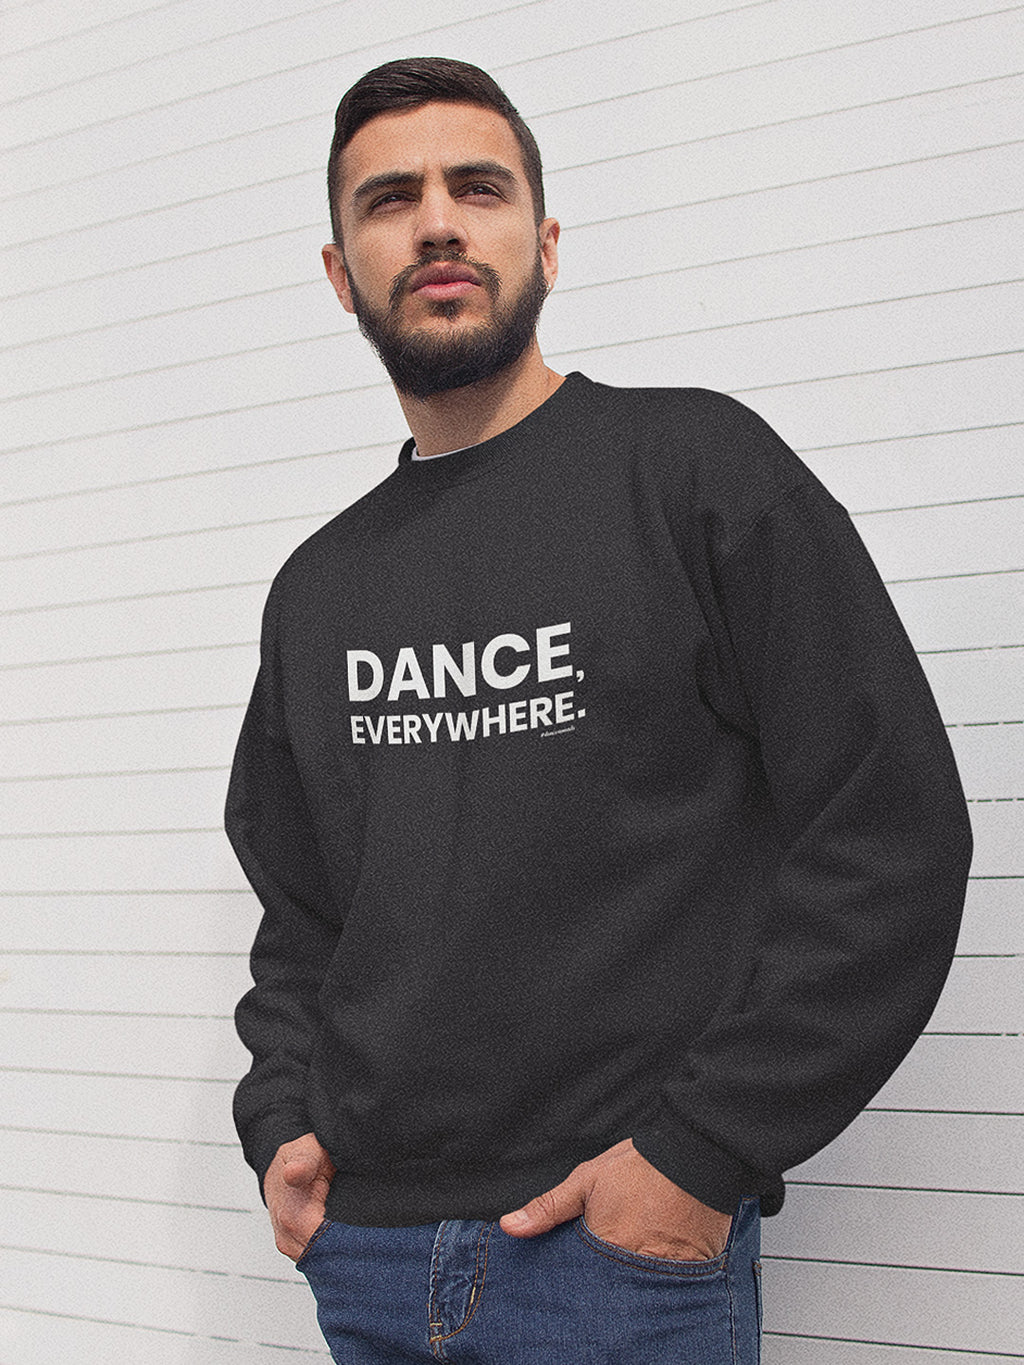 Dance Everywhere Unisex Sweater Black